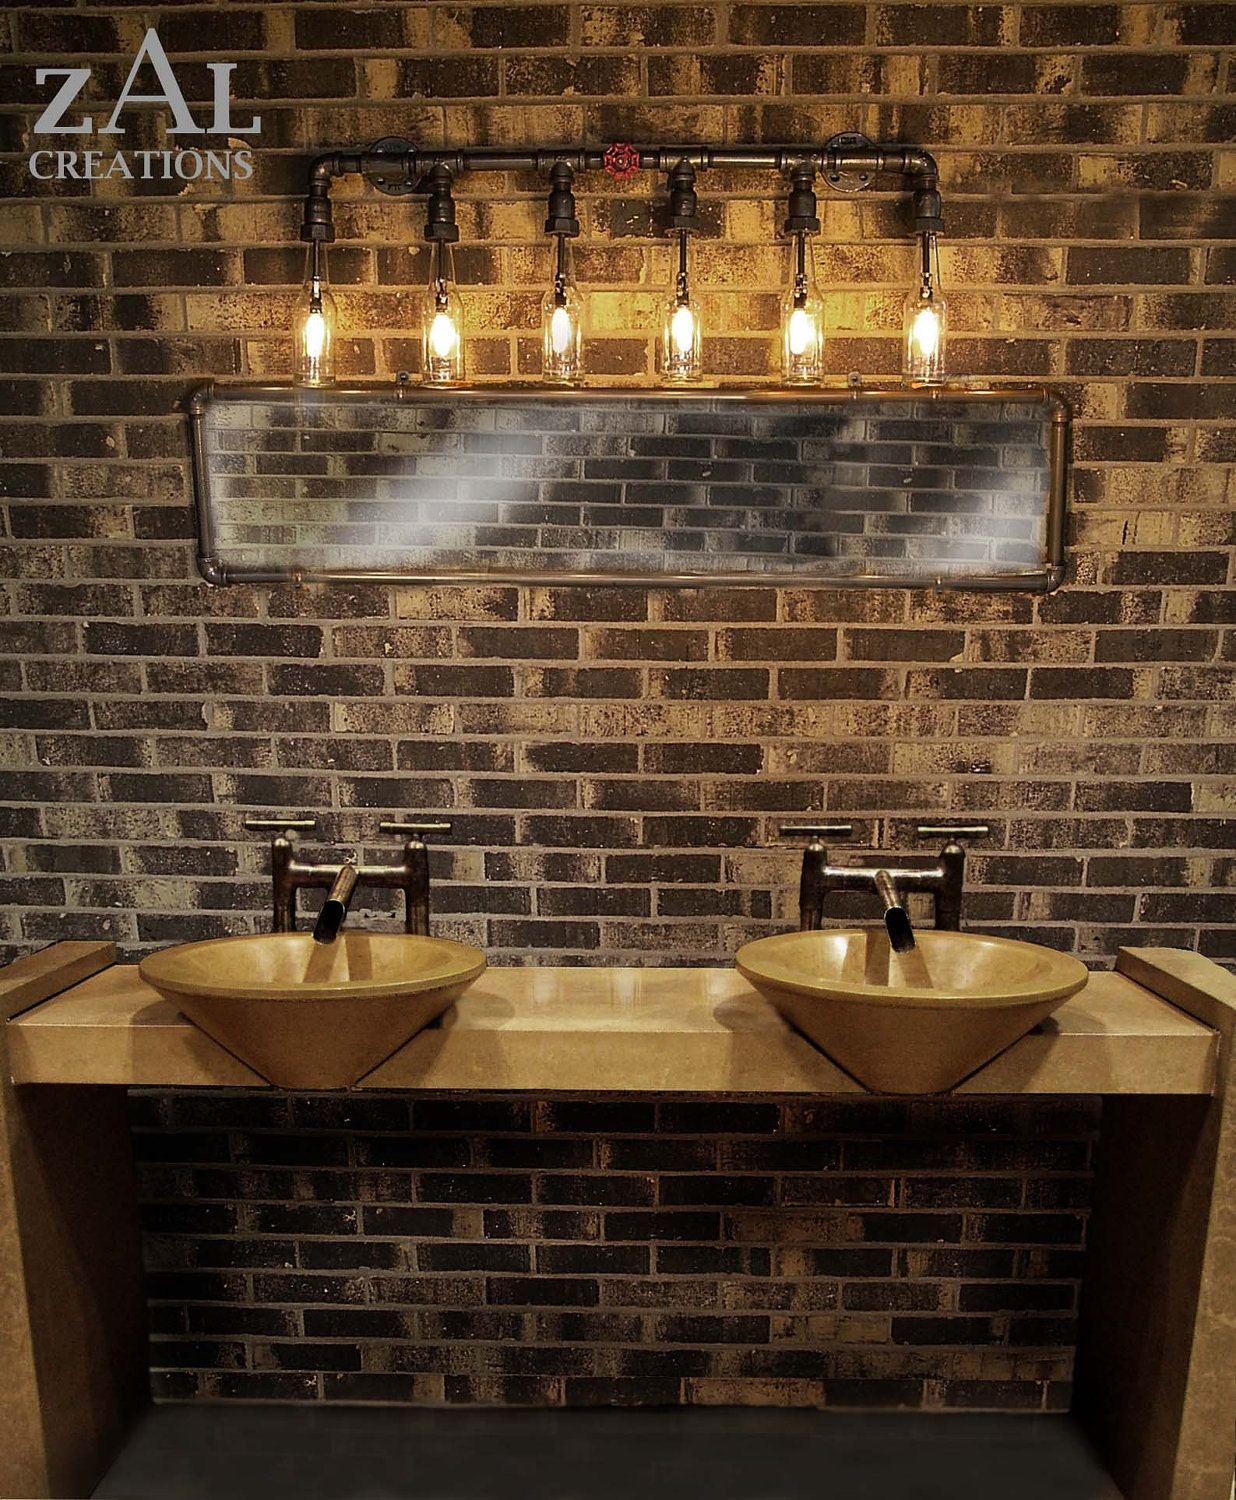 Vanity light wall light beer bottles plumbing pipebathroom for Bathroom 5 light fixtures